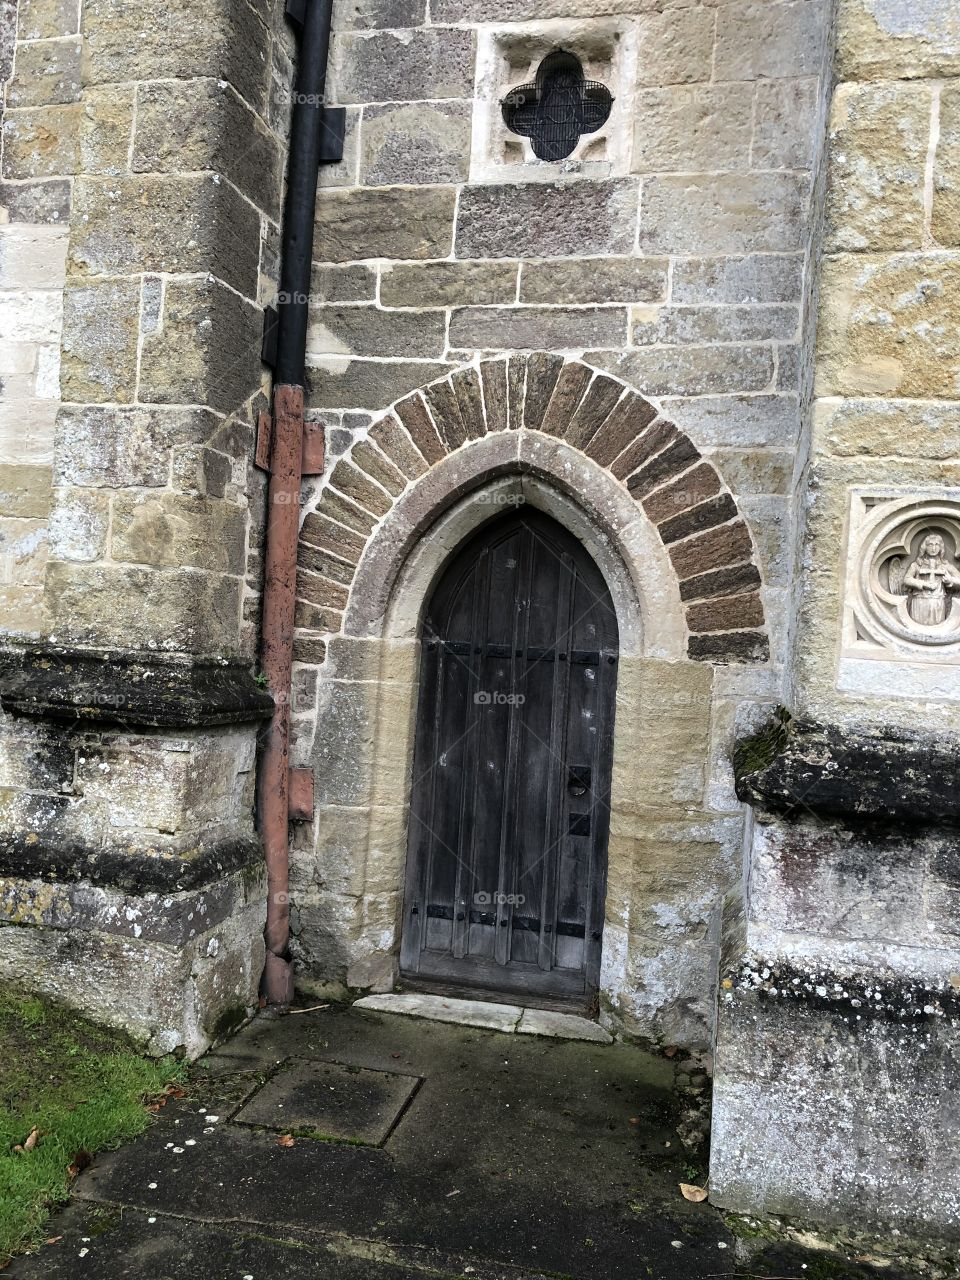 They are both impressive side entrances to Ottery St Mary Church, which one do you prefer?